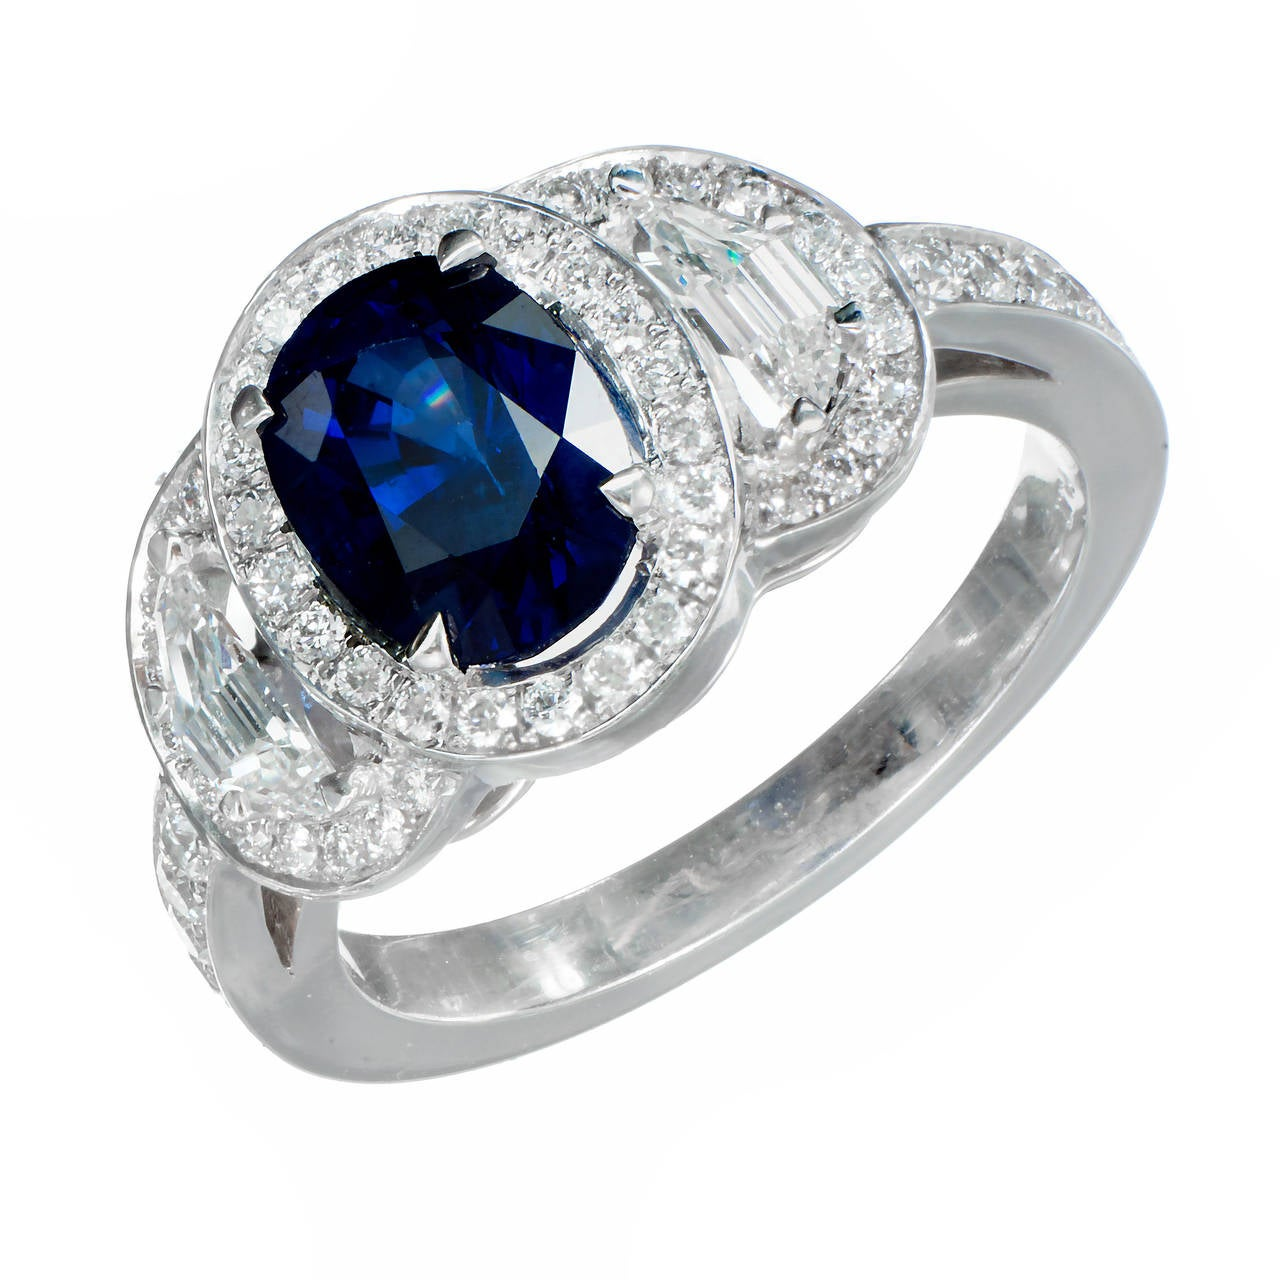 Peter Suchy 1.89 Carat Sapphire Diamond Halo Platinum Engagement Ring